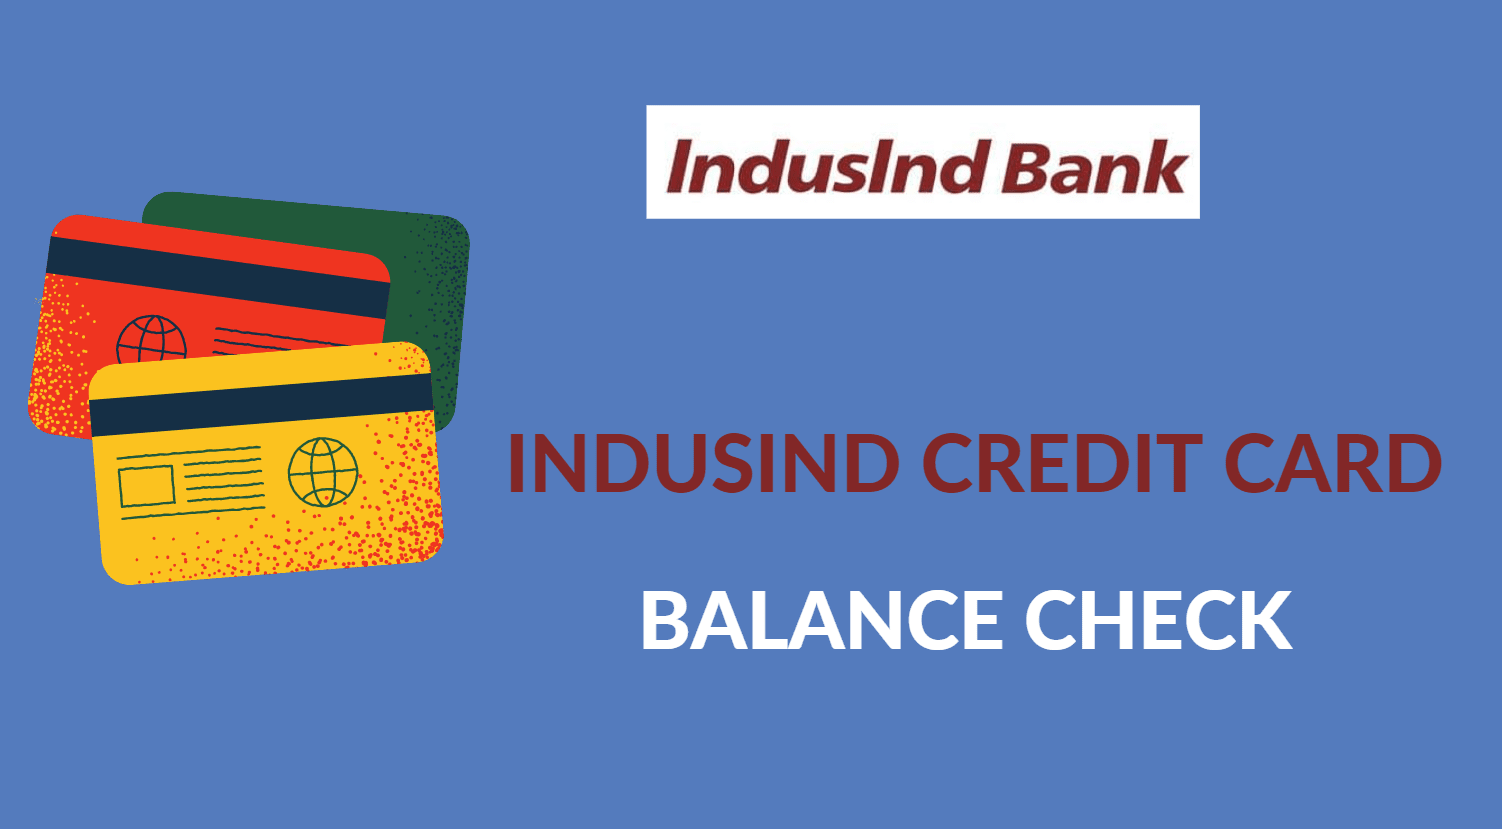 Check IndusInd Bank Credit Card Balance Online